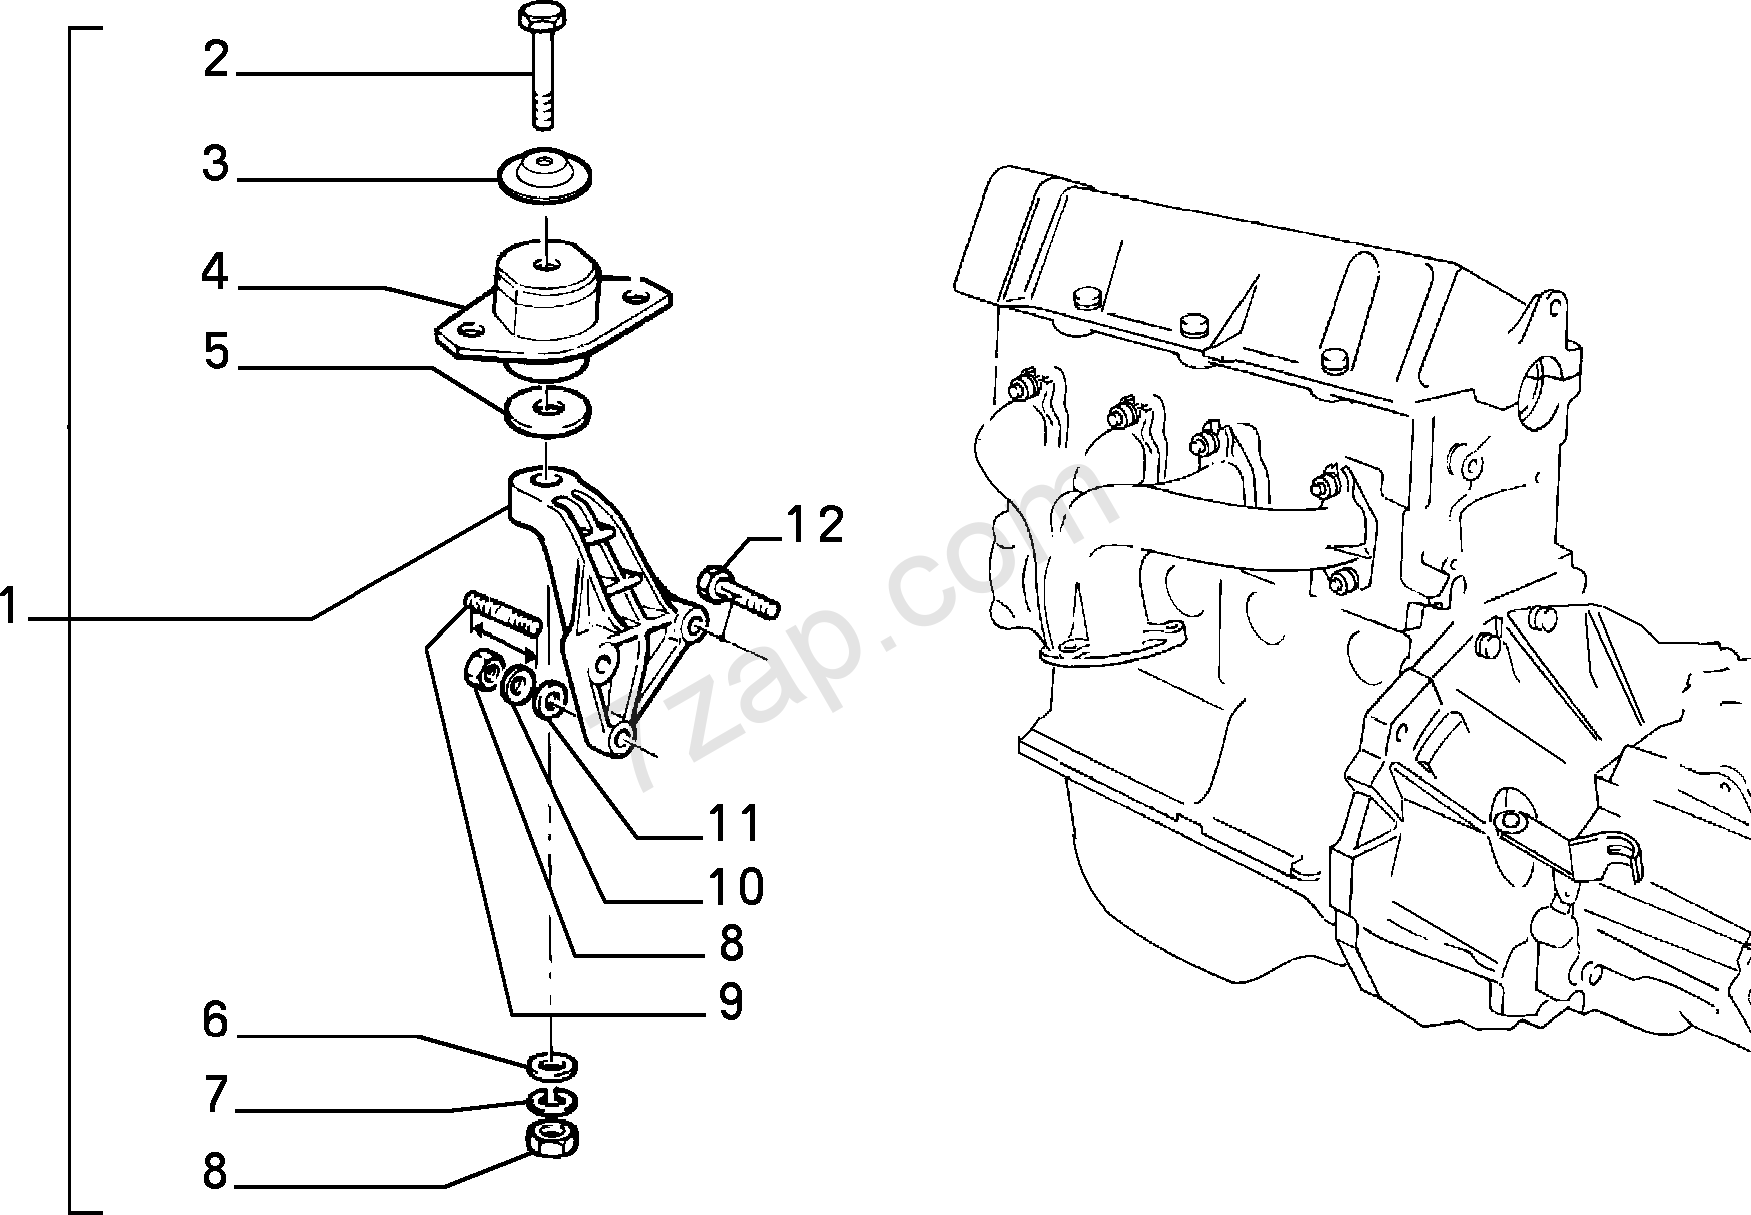 1967 volkswagen beetle engine diagram html